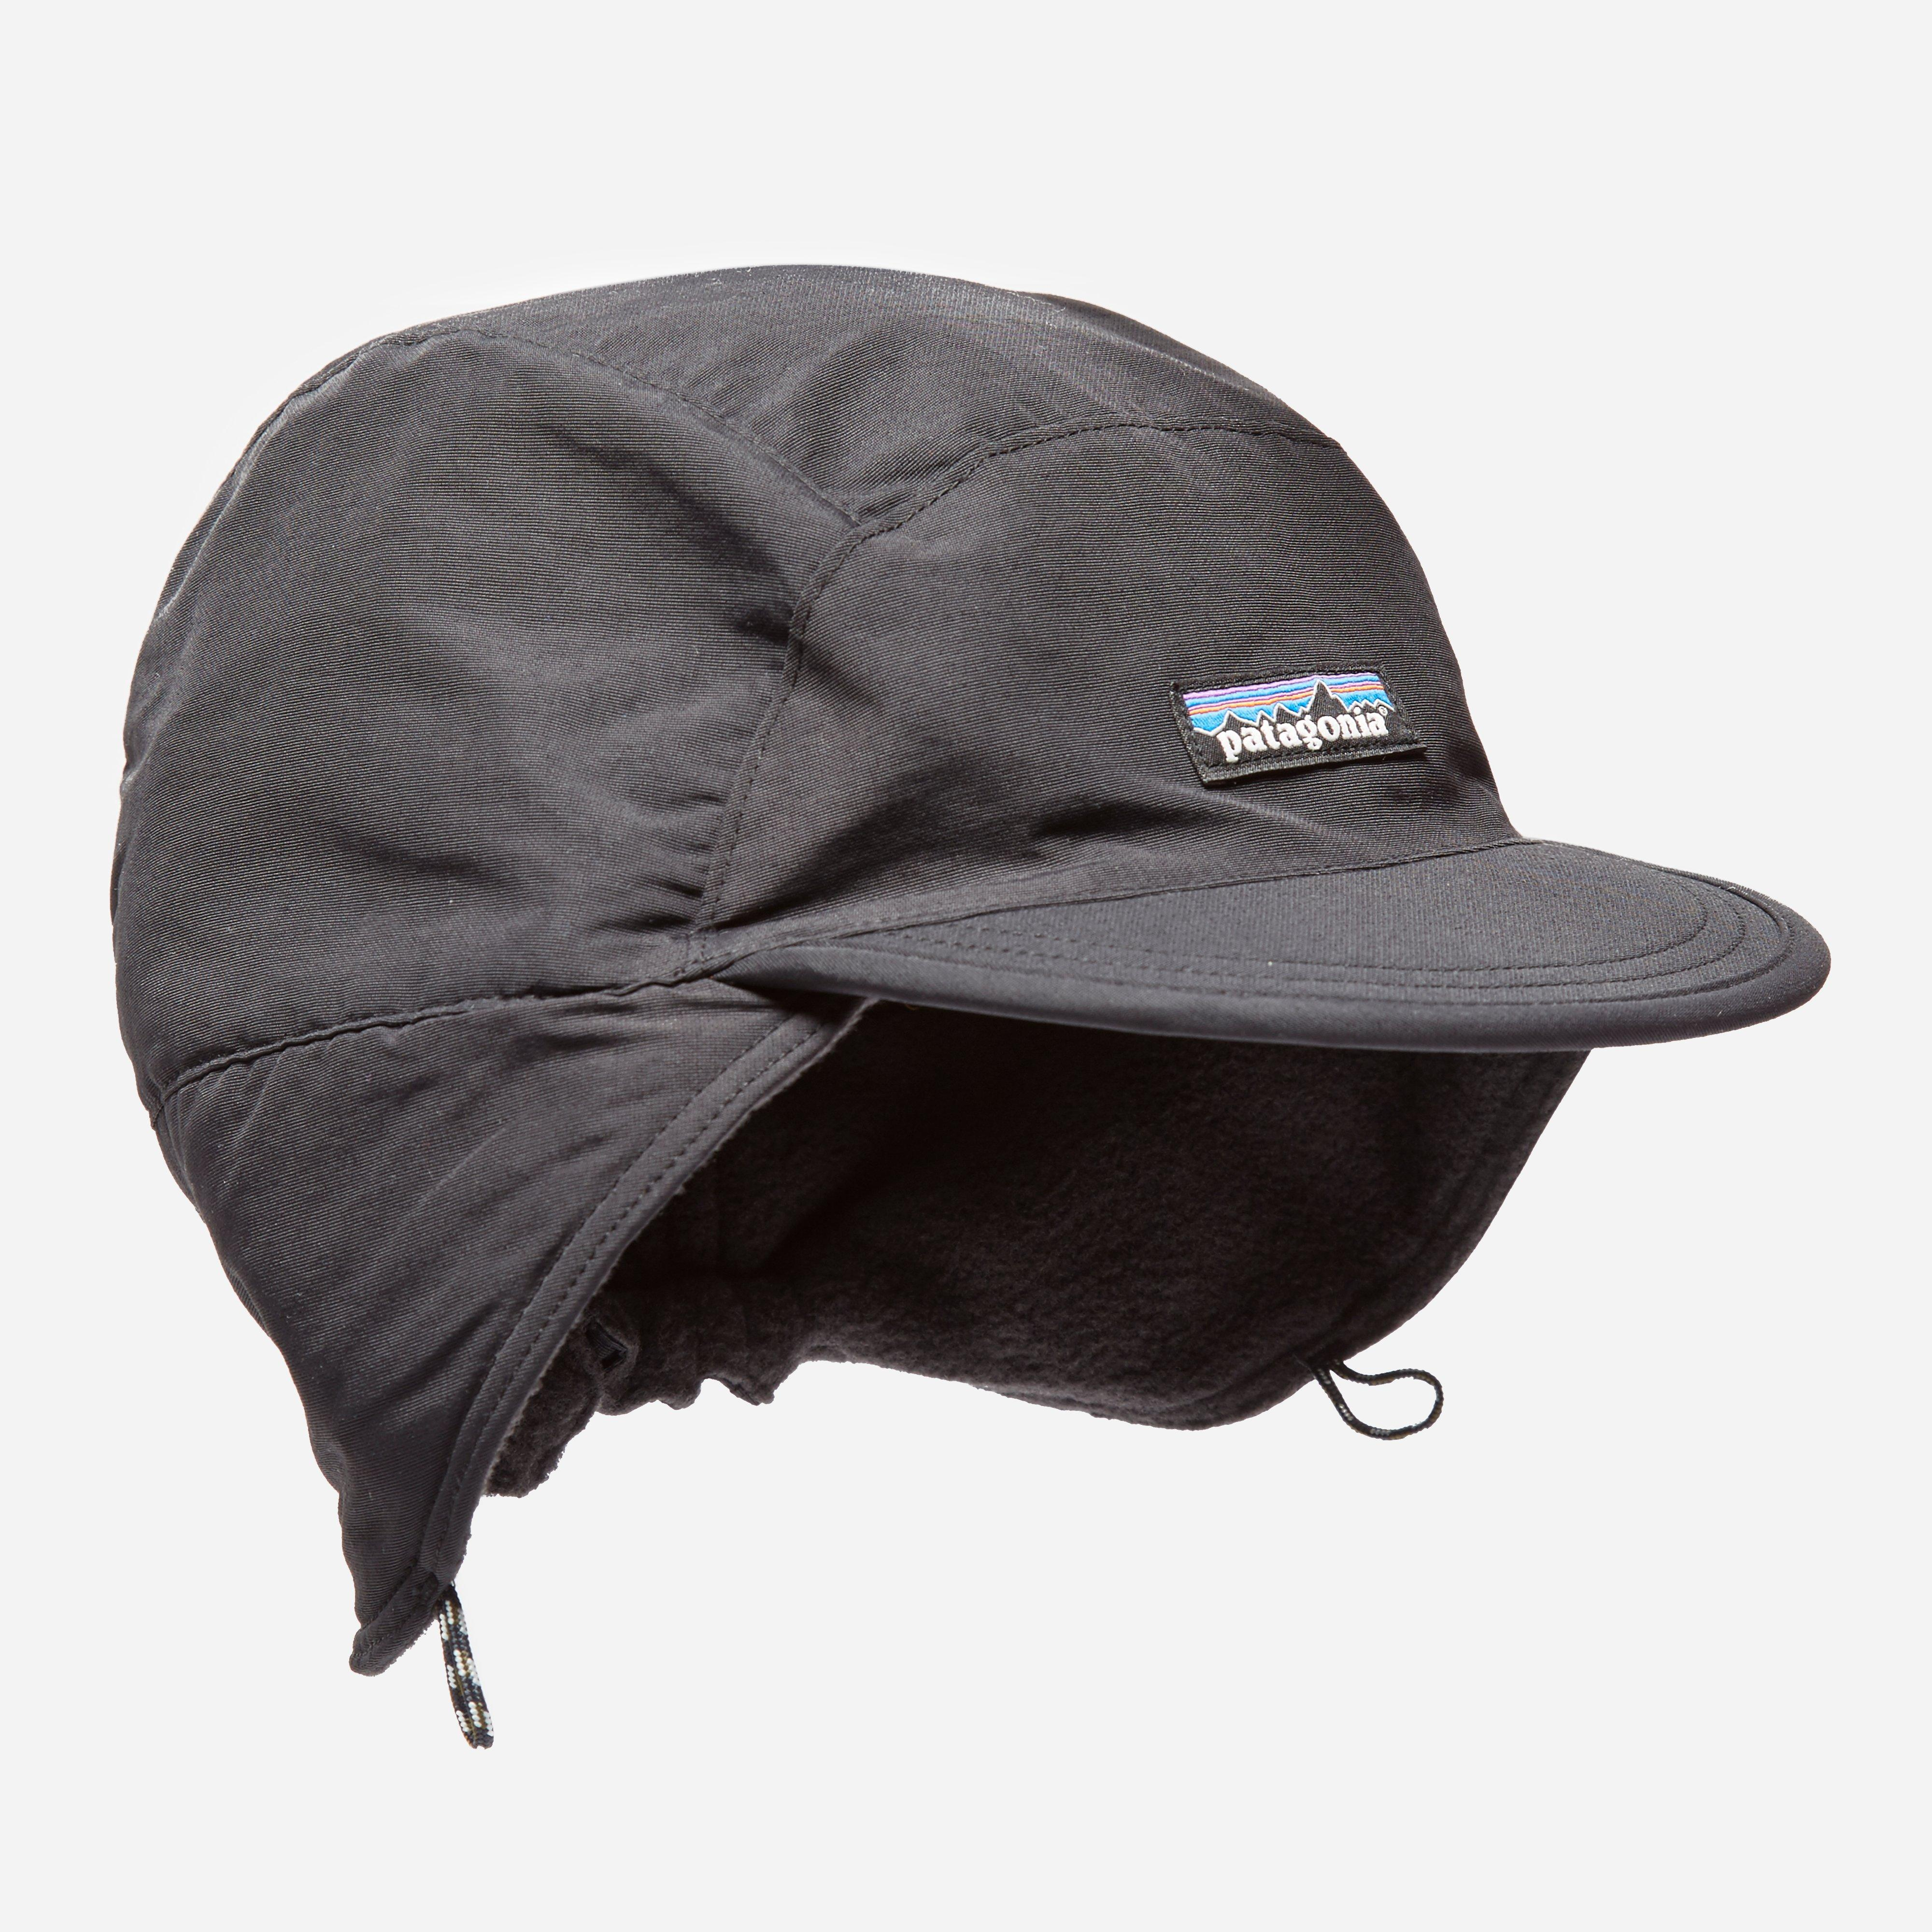 Patagonia Shelled Synch Duckbill Cap